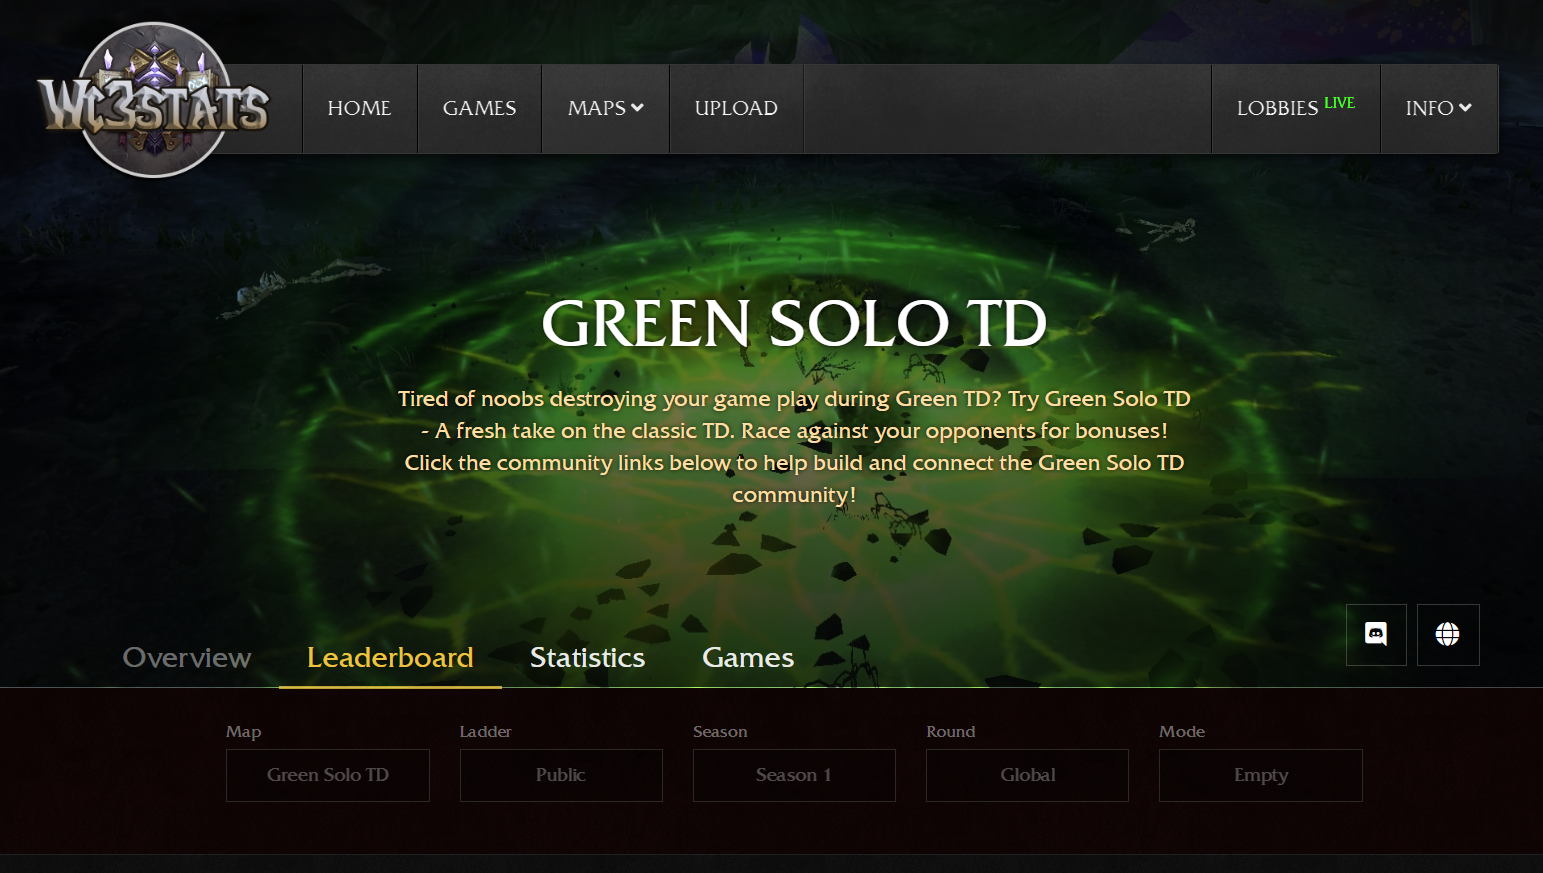 Green Solo TD Rankingsystem and leaderboard on wc3stats.com/green-solo-td